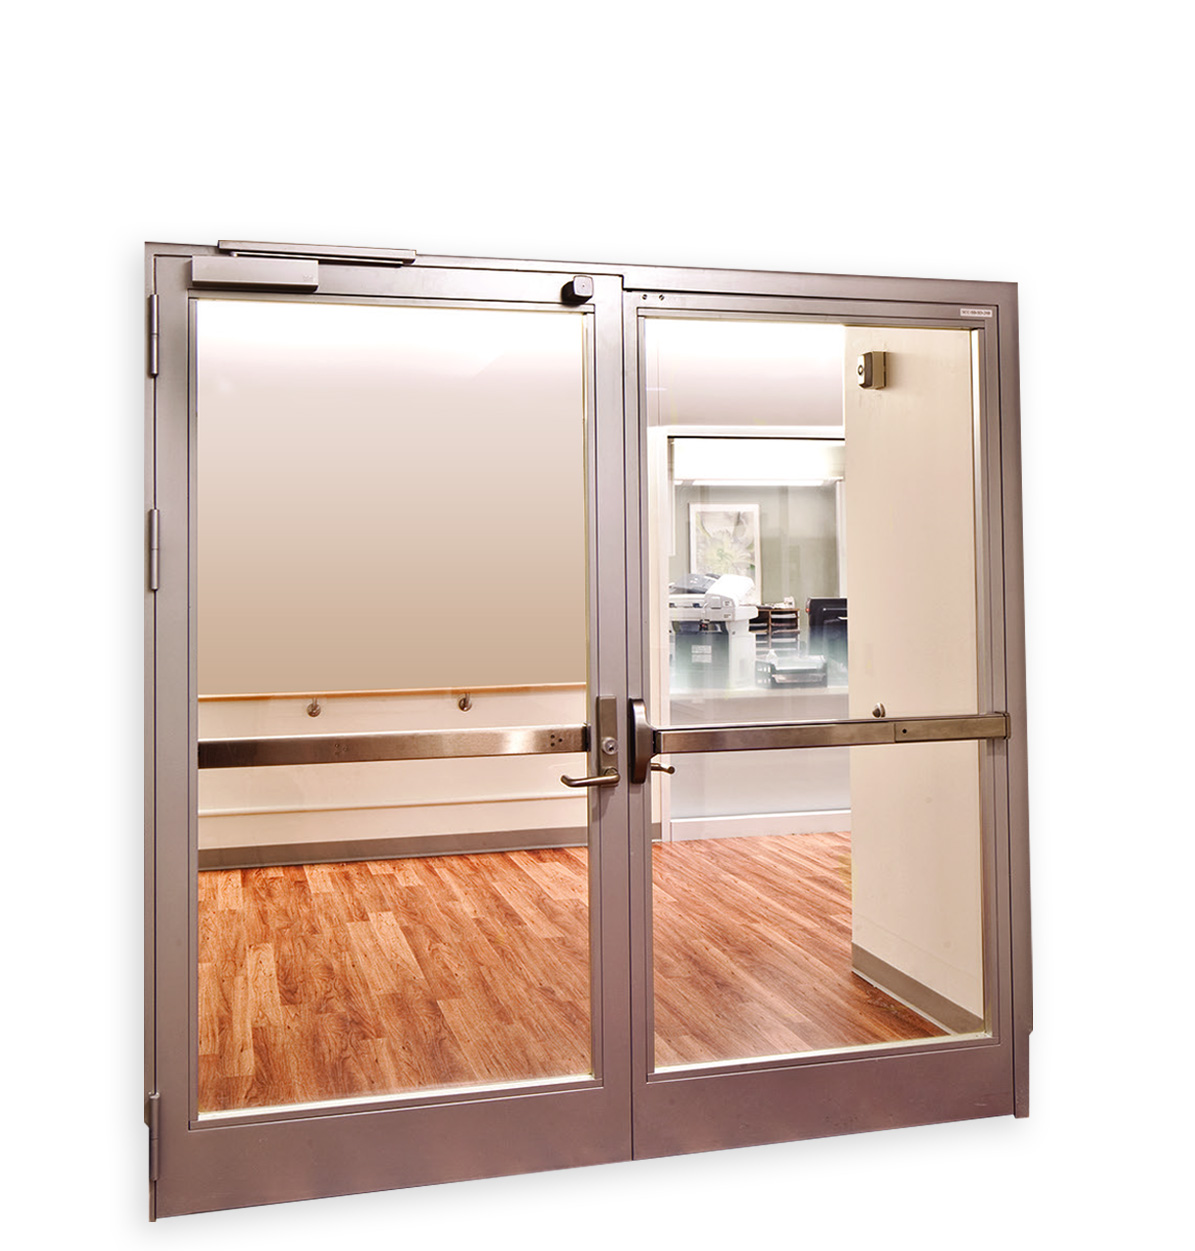 Glazed fire doors superb 90 minute fire rated door naffco - What is a fire rated door ...